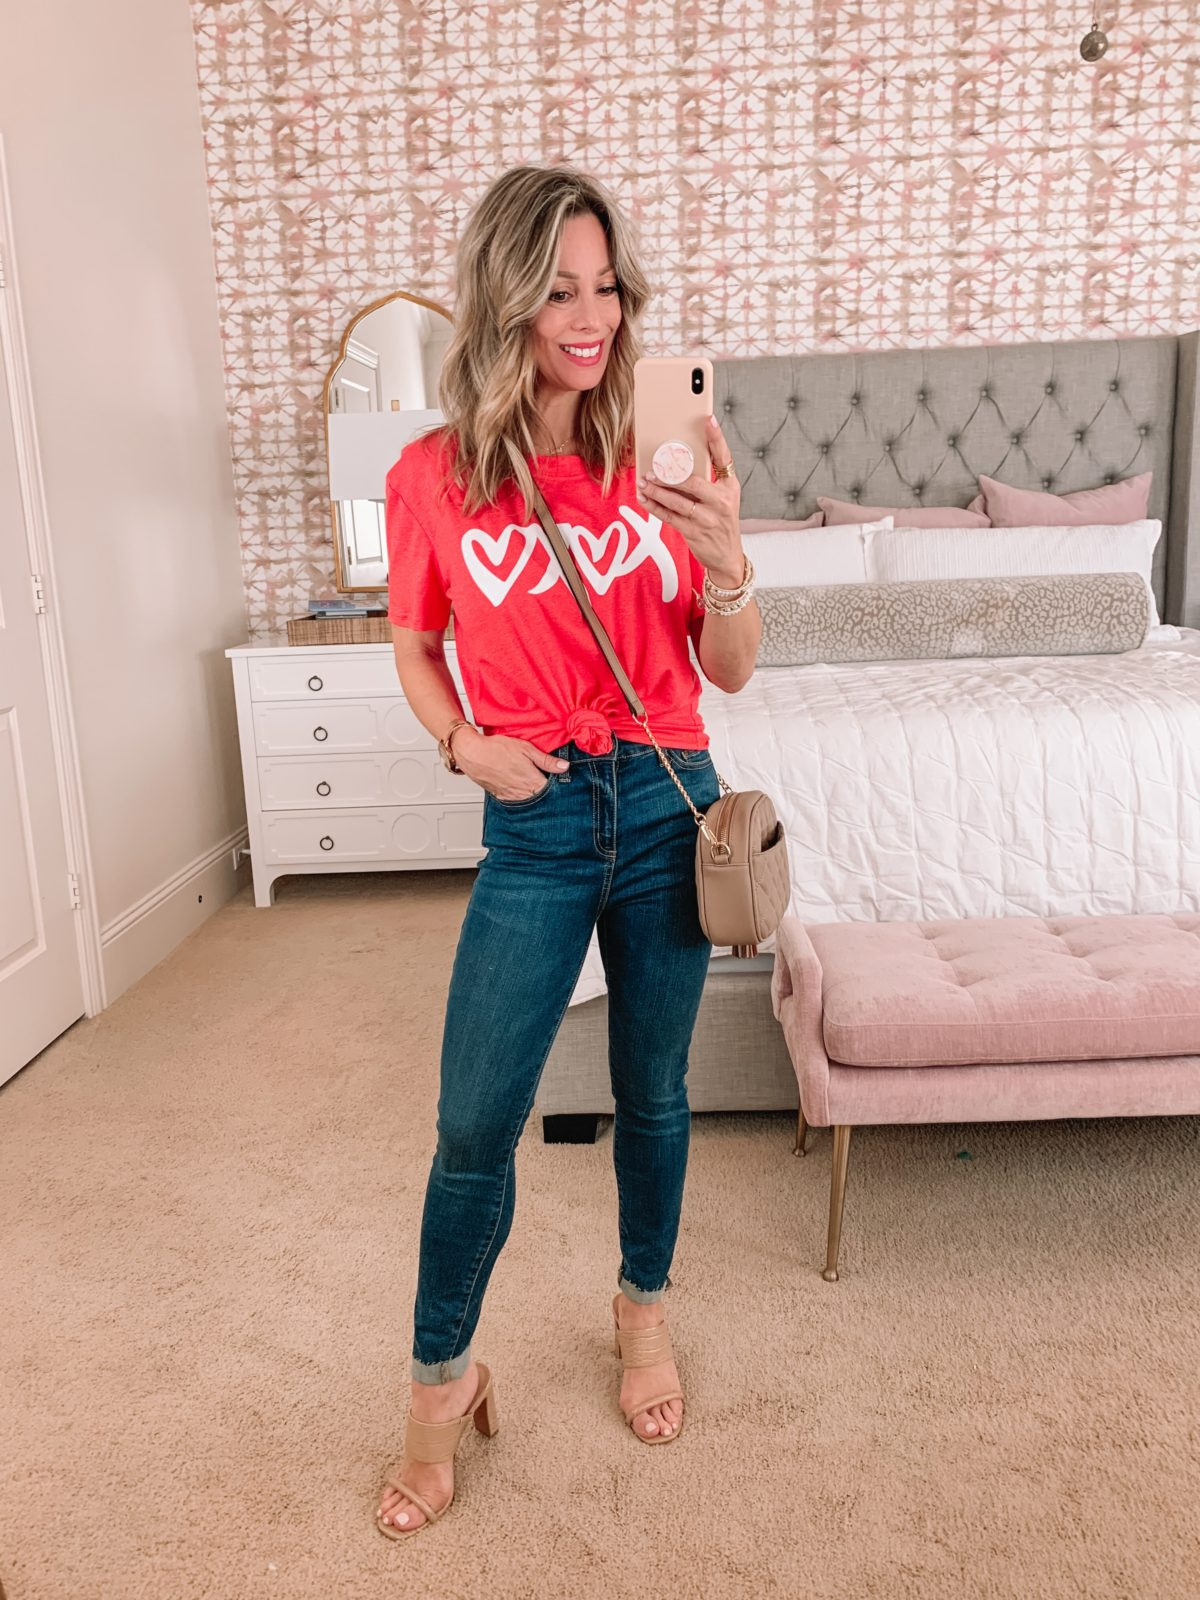 Amazon Fashion Faves, Xoxo Tee, Jeans, Sandals, Crossbody